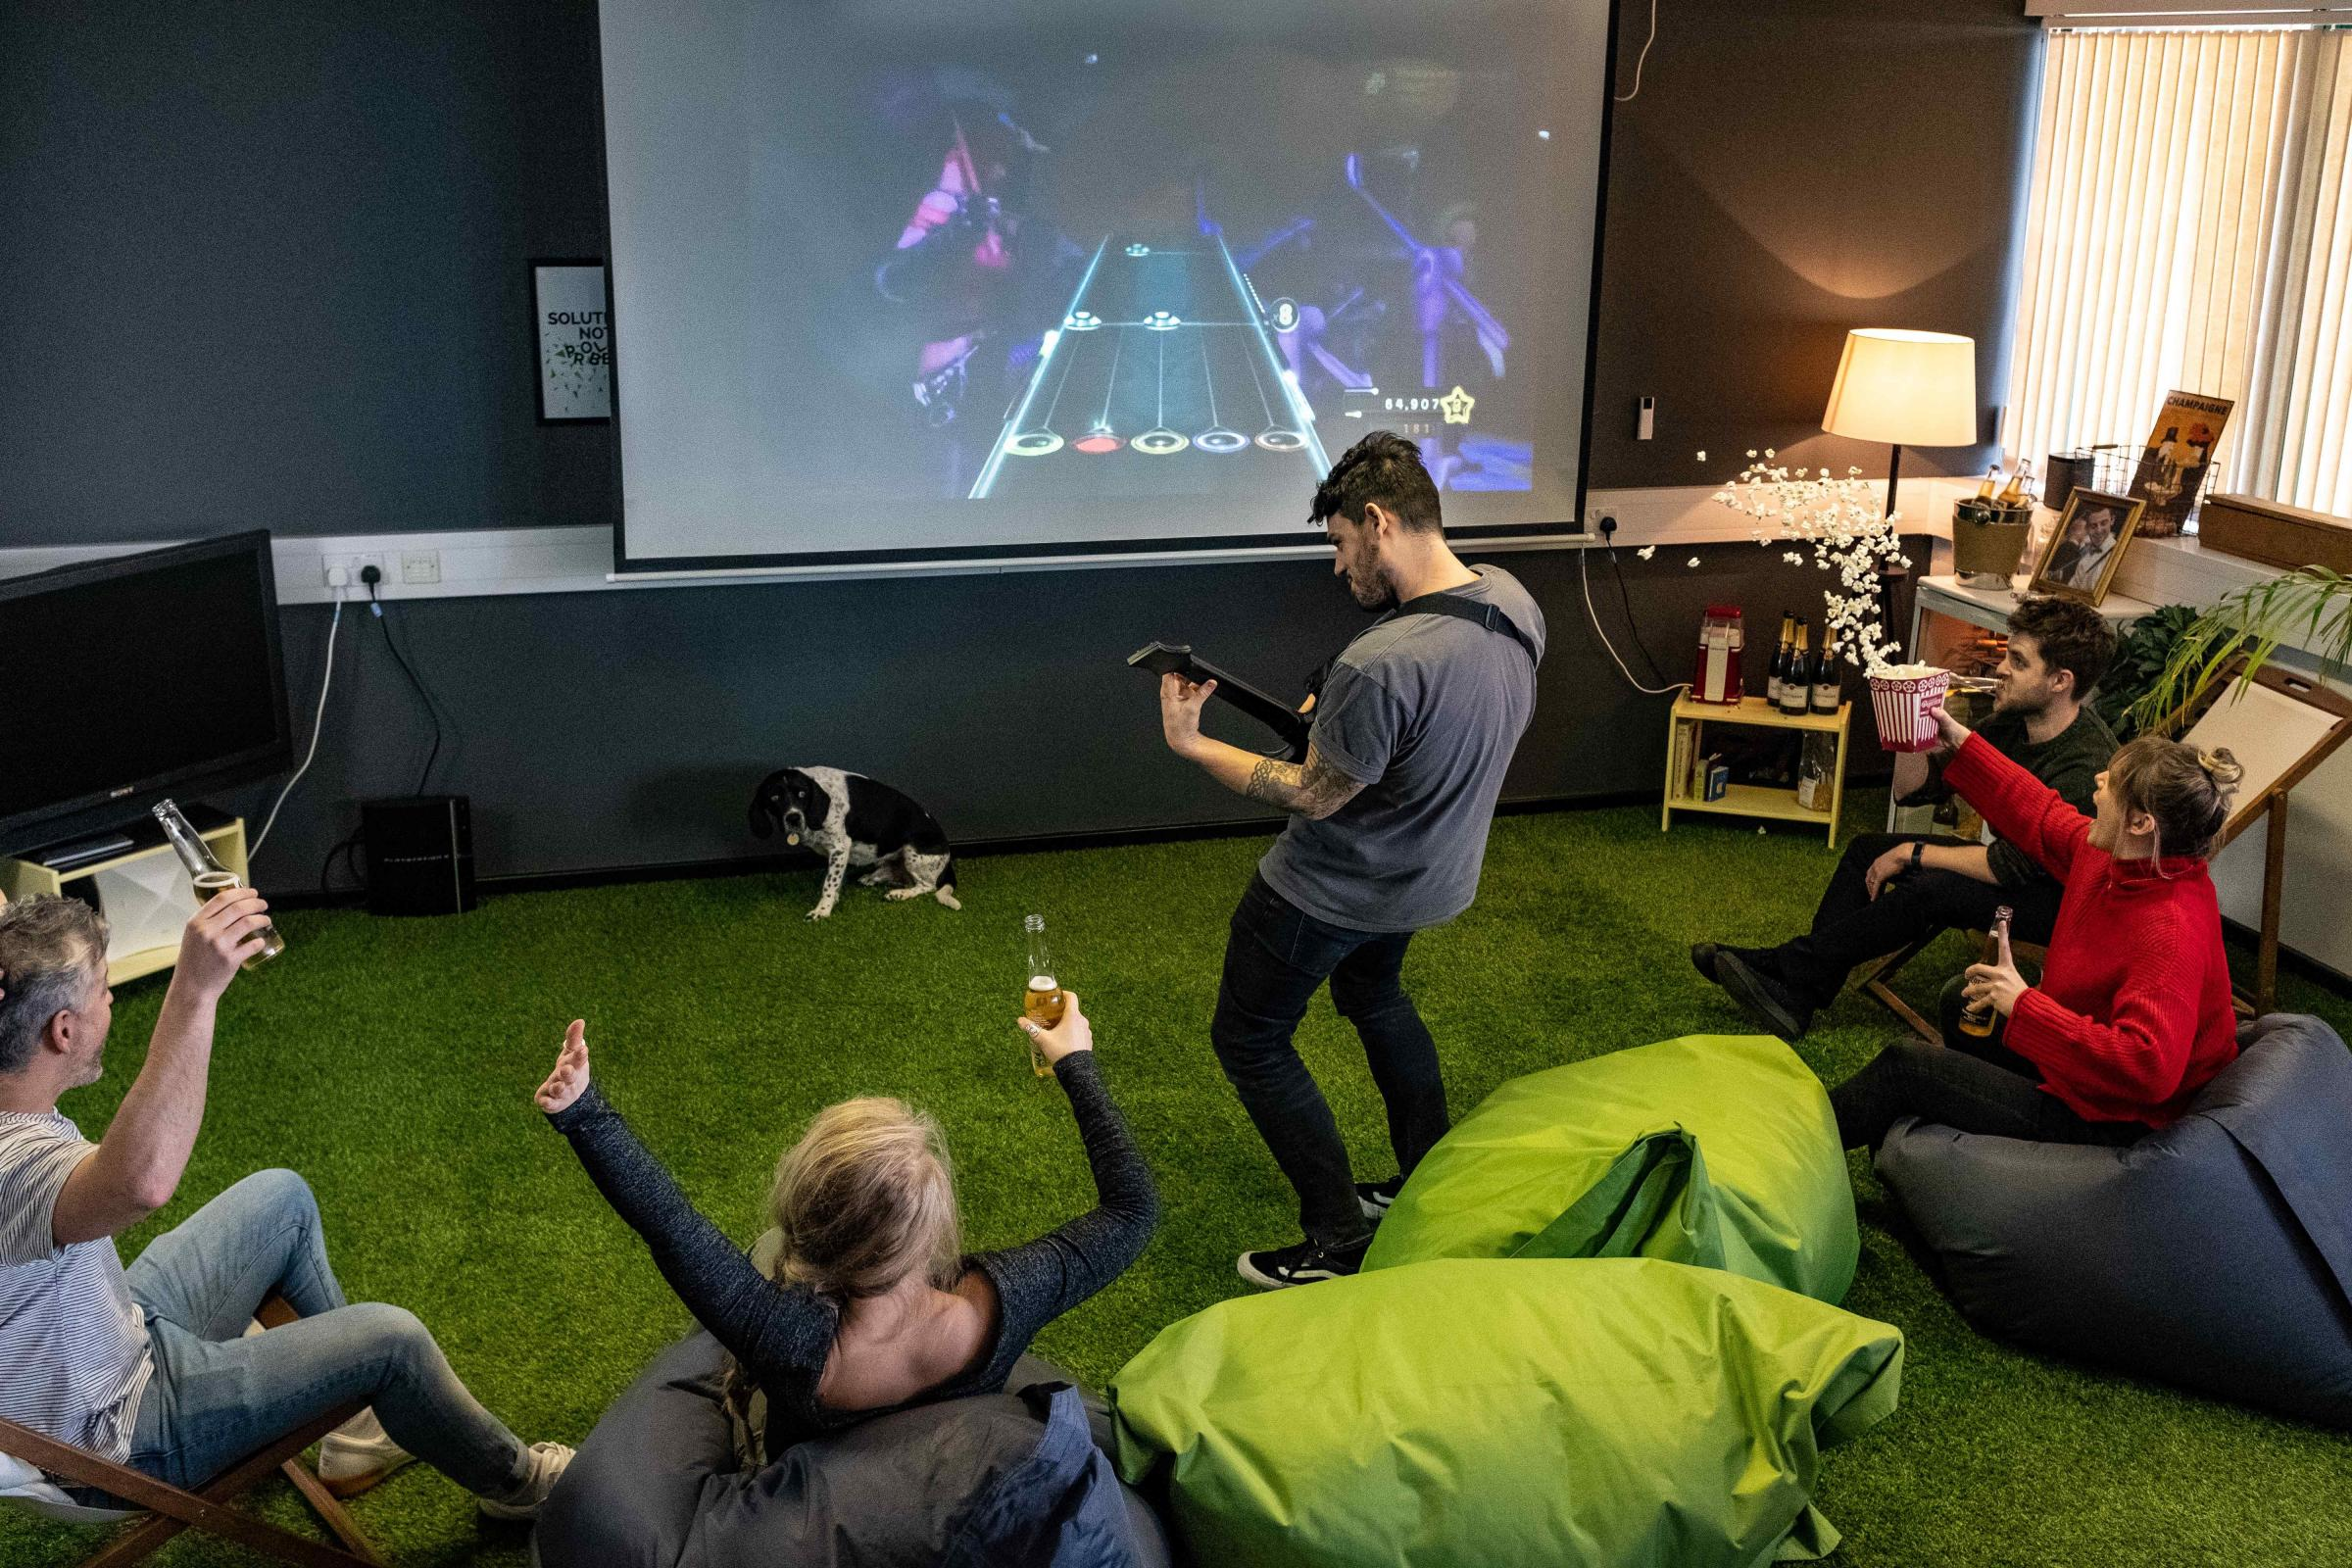 Should businesses invest in providing better downtime areas for its employees? Picture by Zest Digital